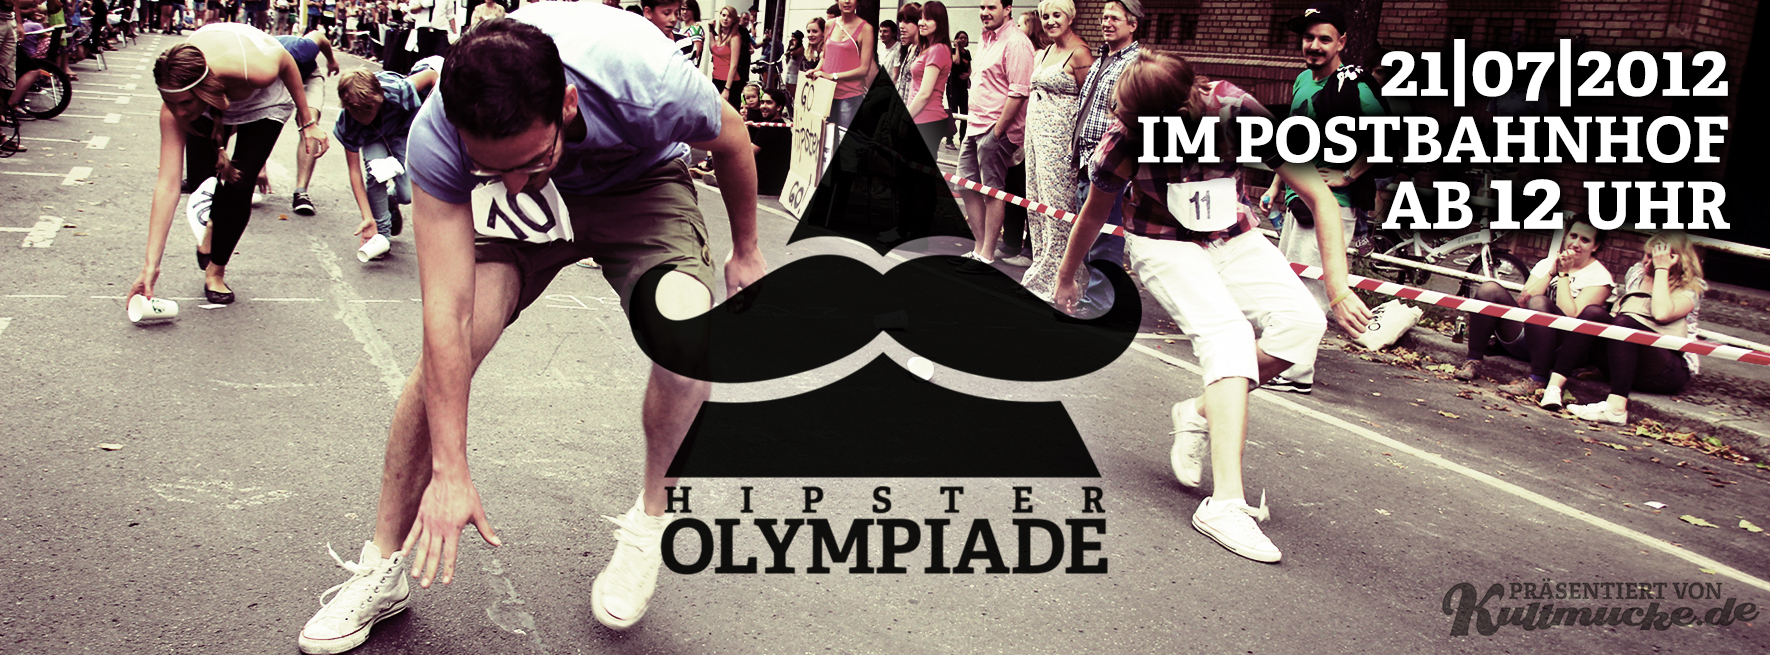 Hipster Olympiade Berlin